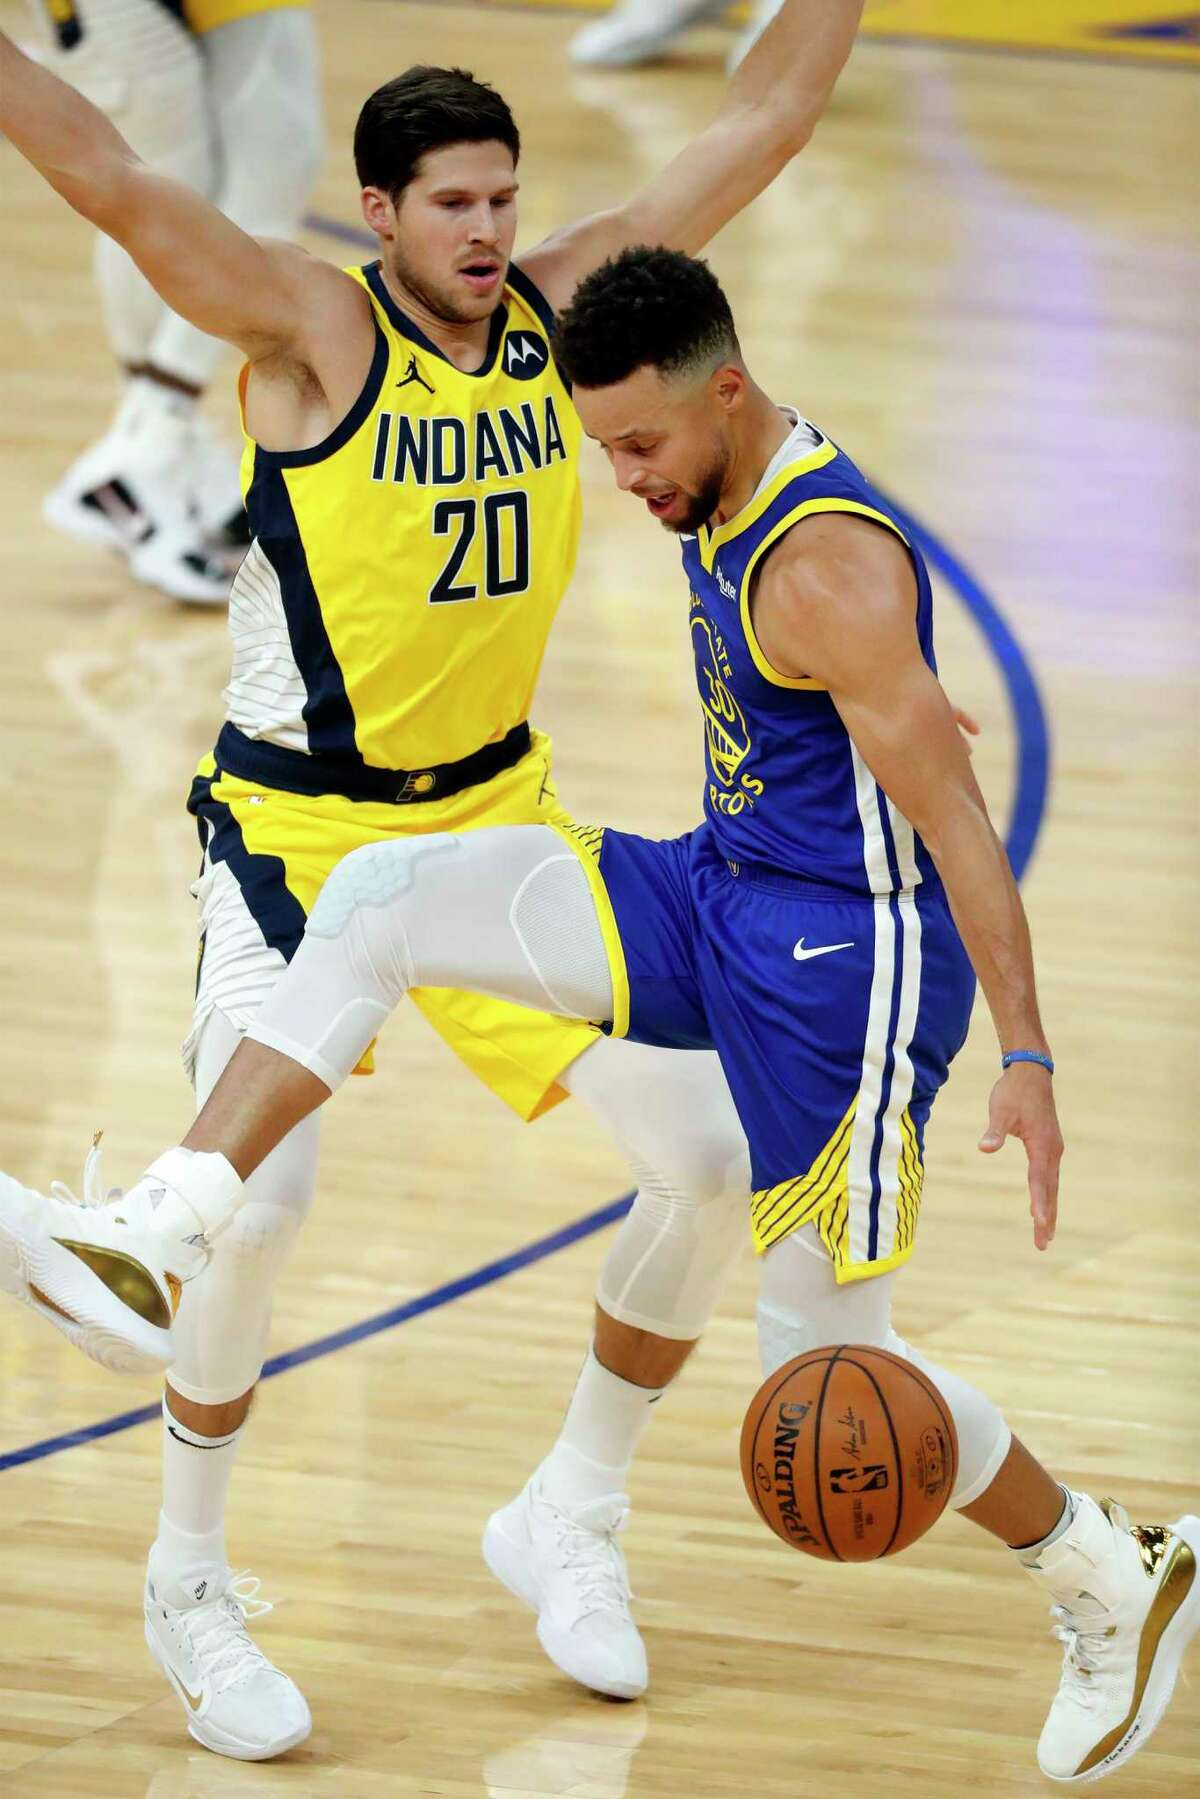 Golden State Warriors' Stephen Curry loses the ball after being fouled by the Indiana Pacers' Doug McDermott in the first quarter at Chase Center in San Francisco on Tuesday, Jan. 12, 2021.